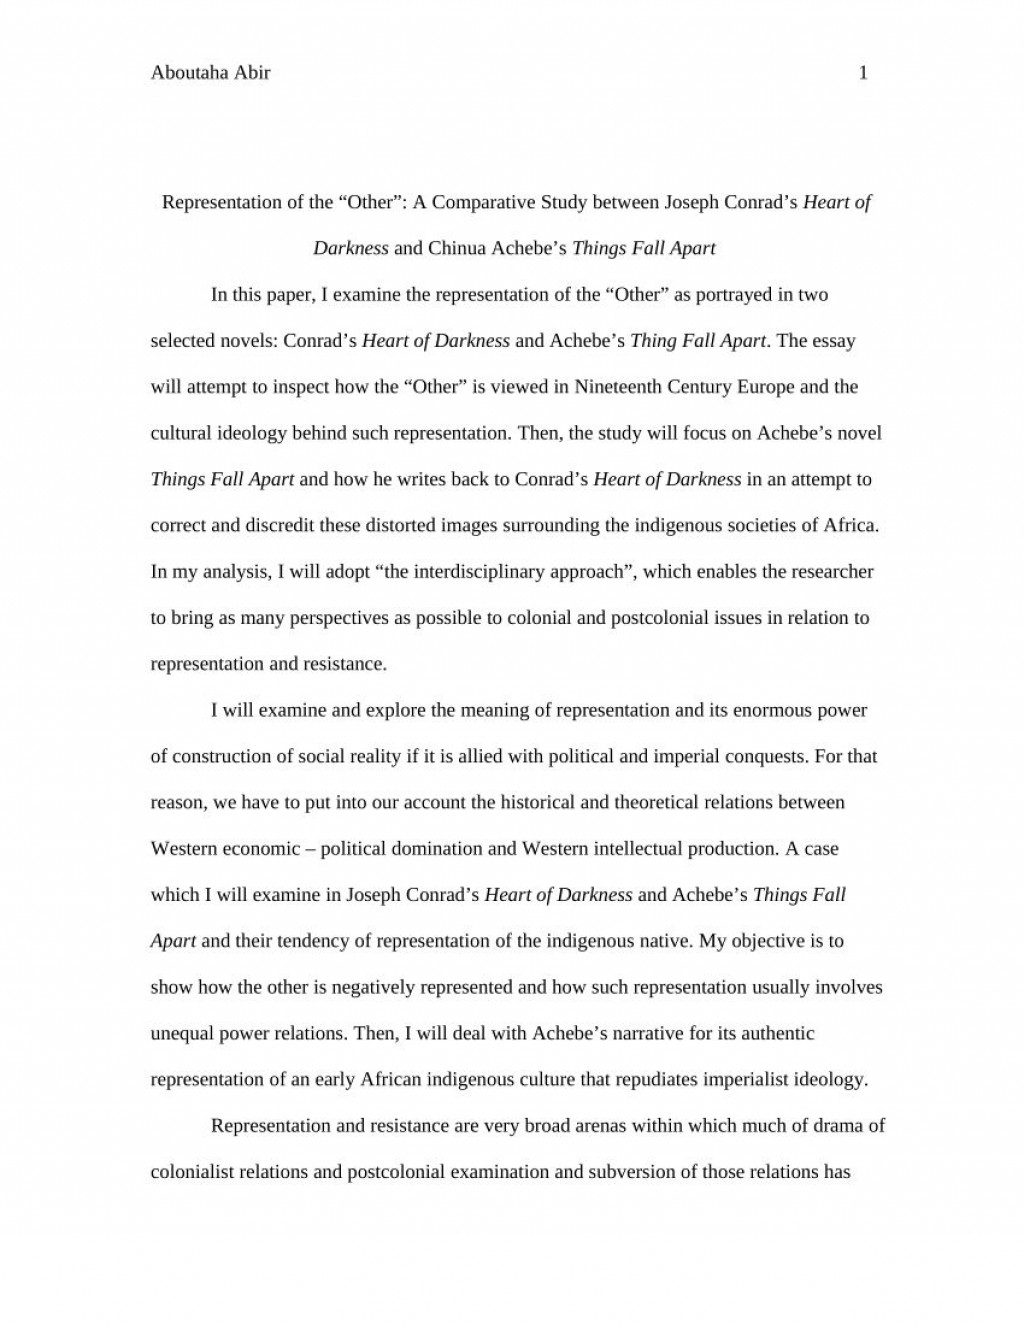 003 Formidable Thing Fall Apart Essay Design Large